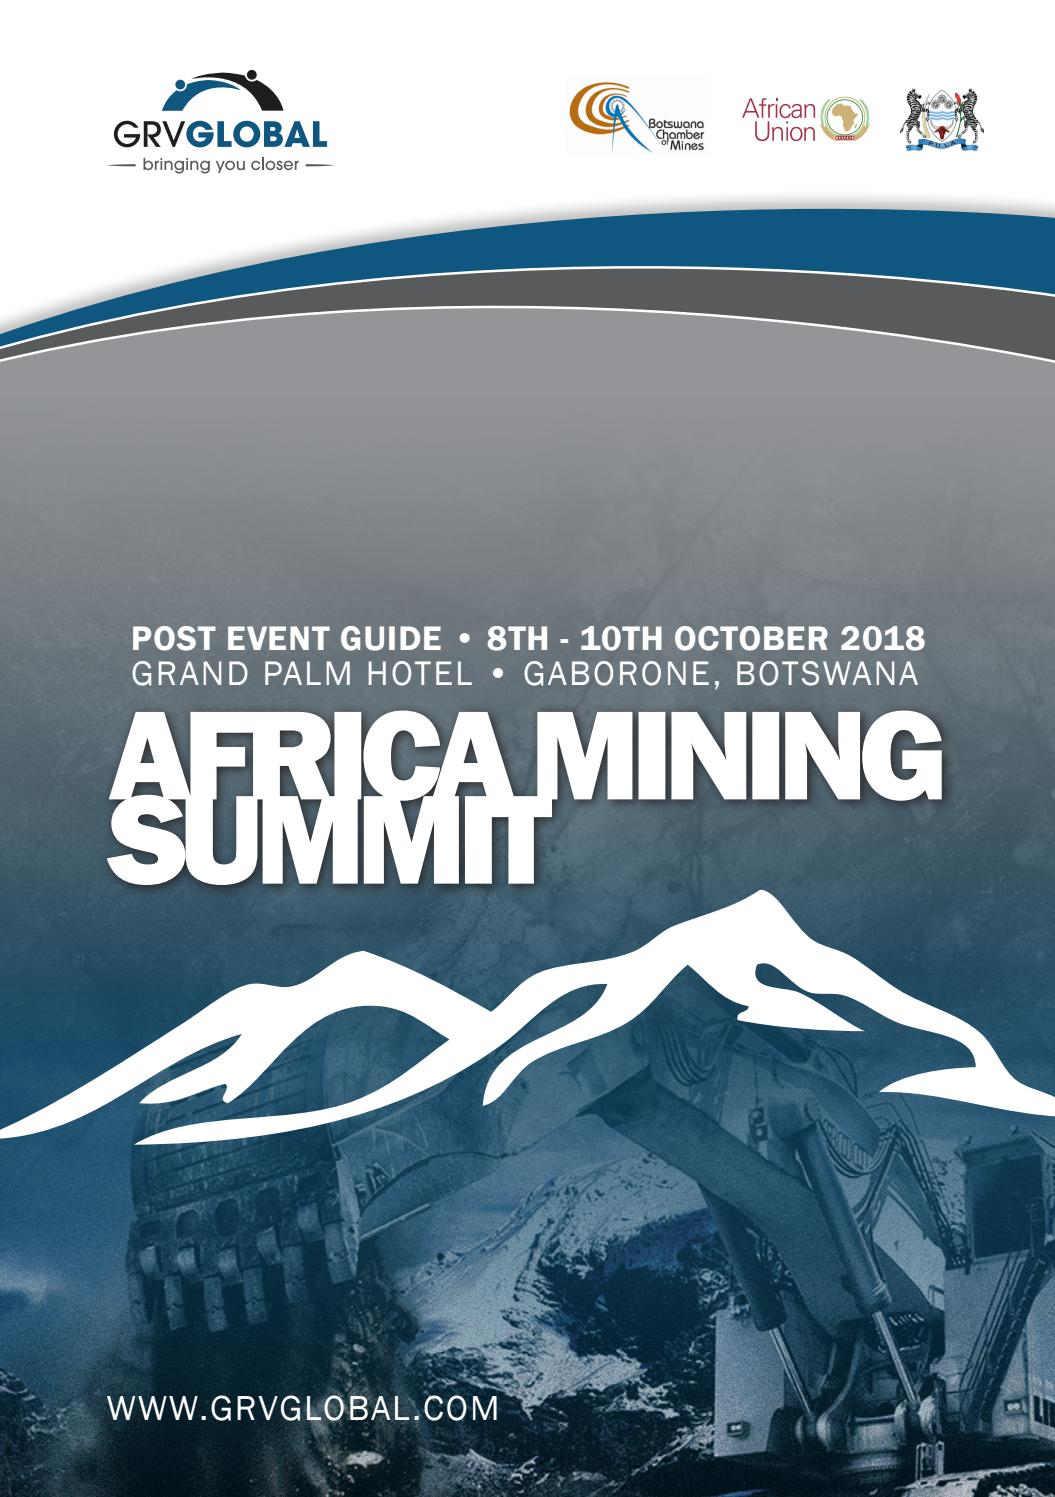 Advanced Solutions For Growing Companies Mmk Systems Africa Mining Post Summit Report 2018